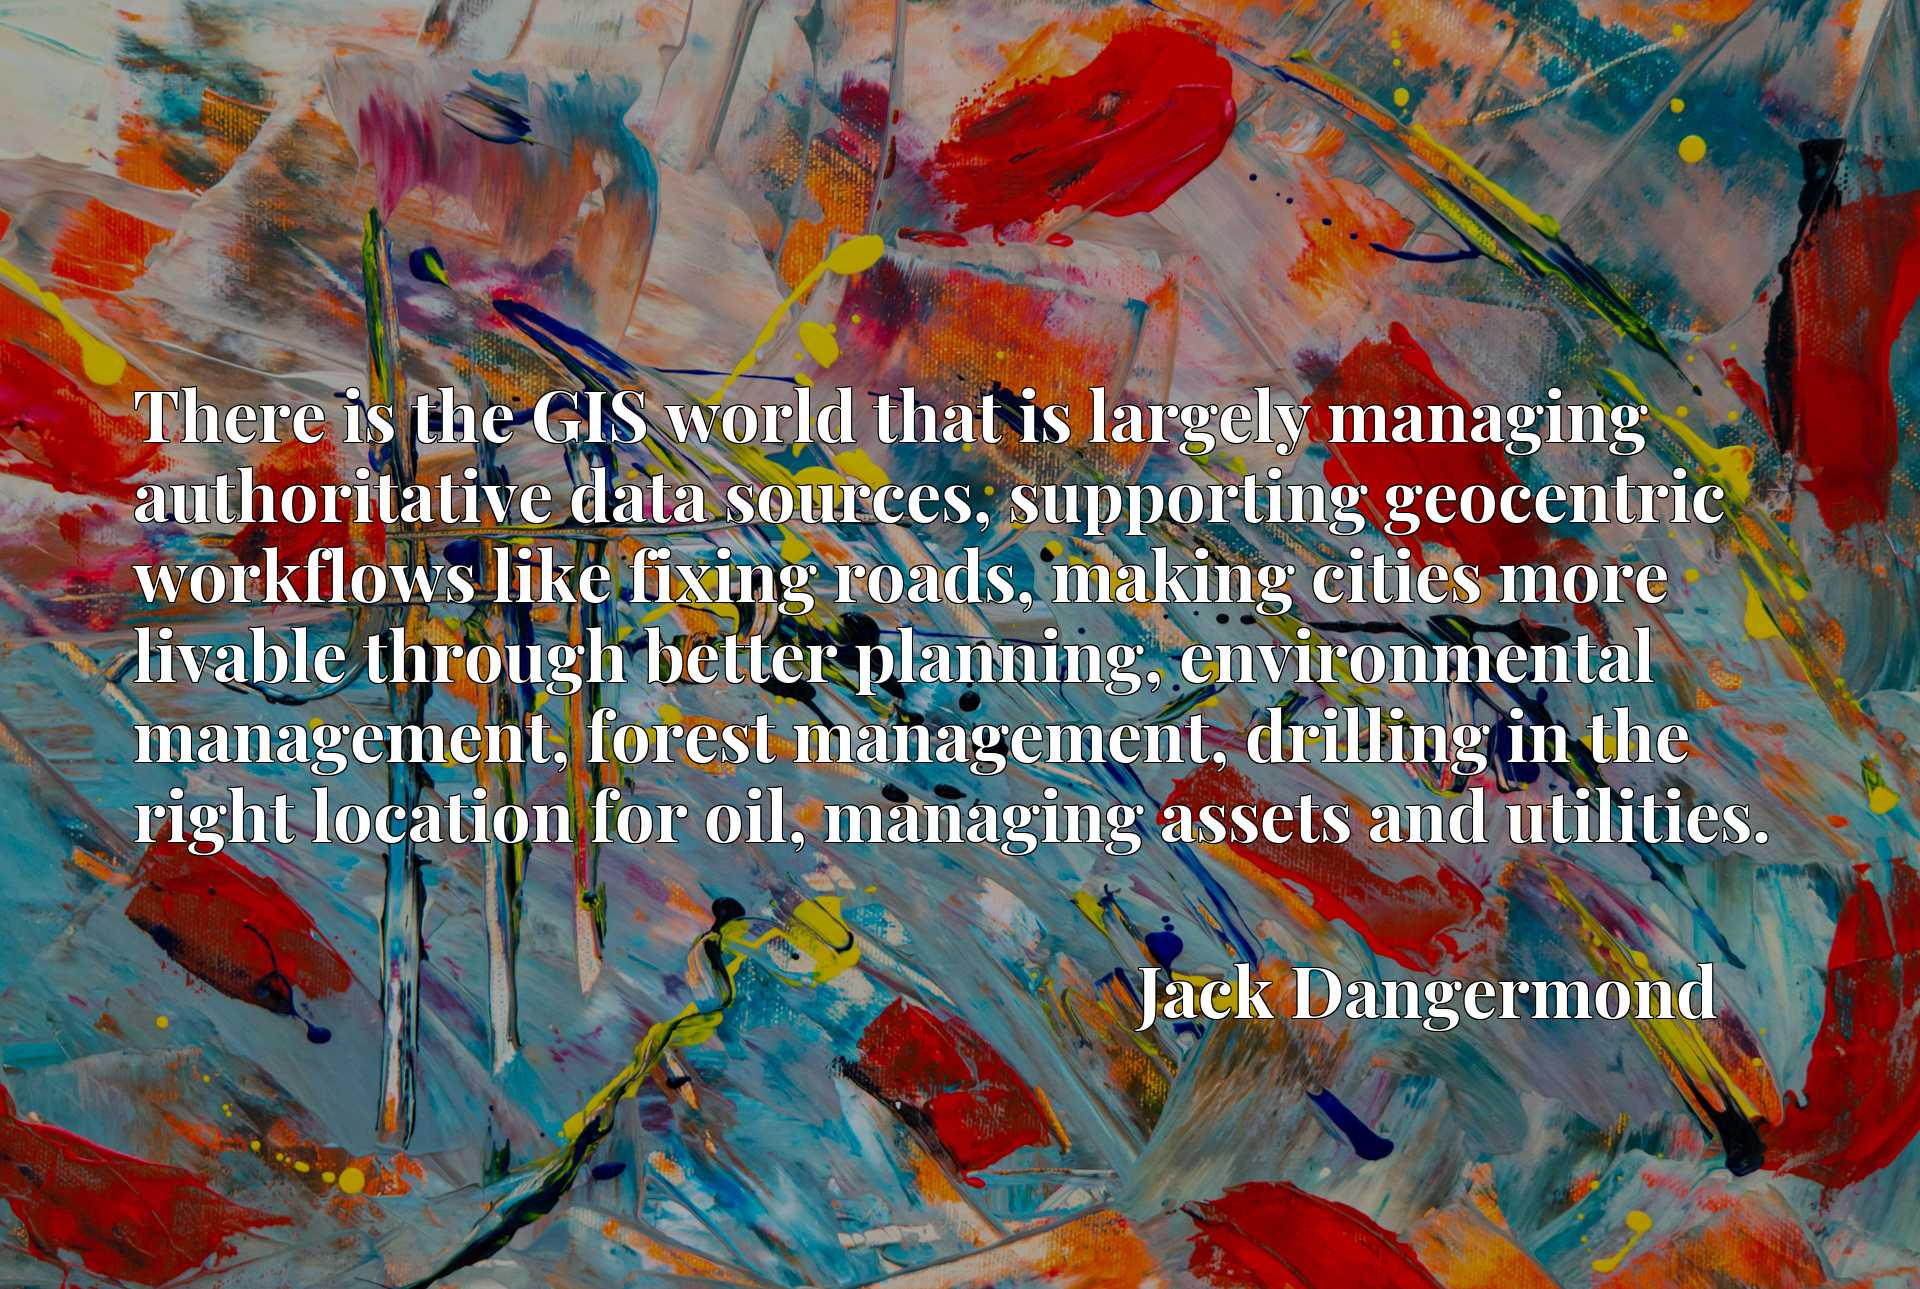 There is the GIS world that is largely managing authoritative data sources, supporting geocentric workflows like fixing roads, making cities more livable through better planning, environmental management, forest management, drilling in the right location for oil, managing assets and utilities.